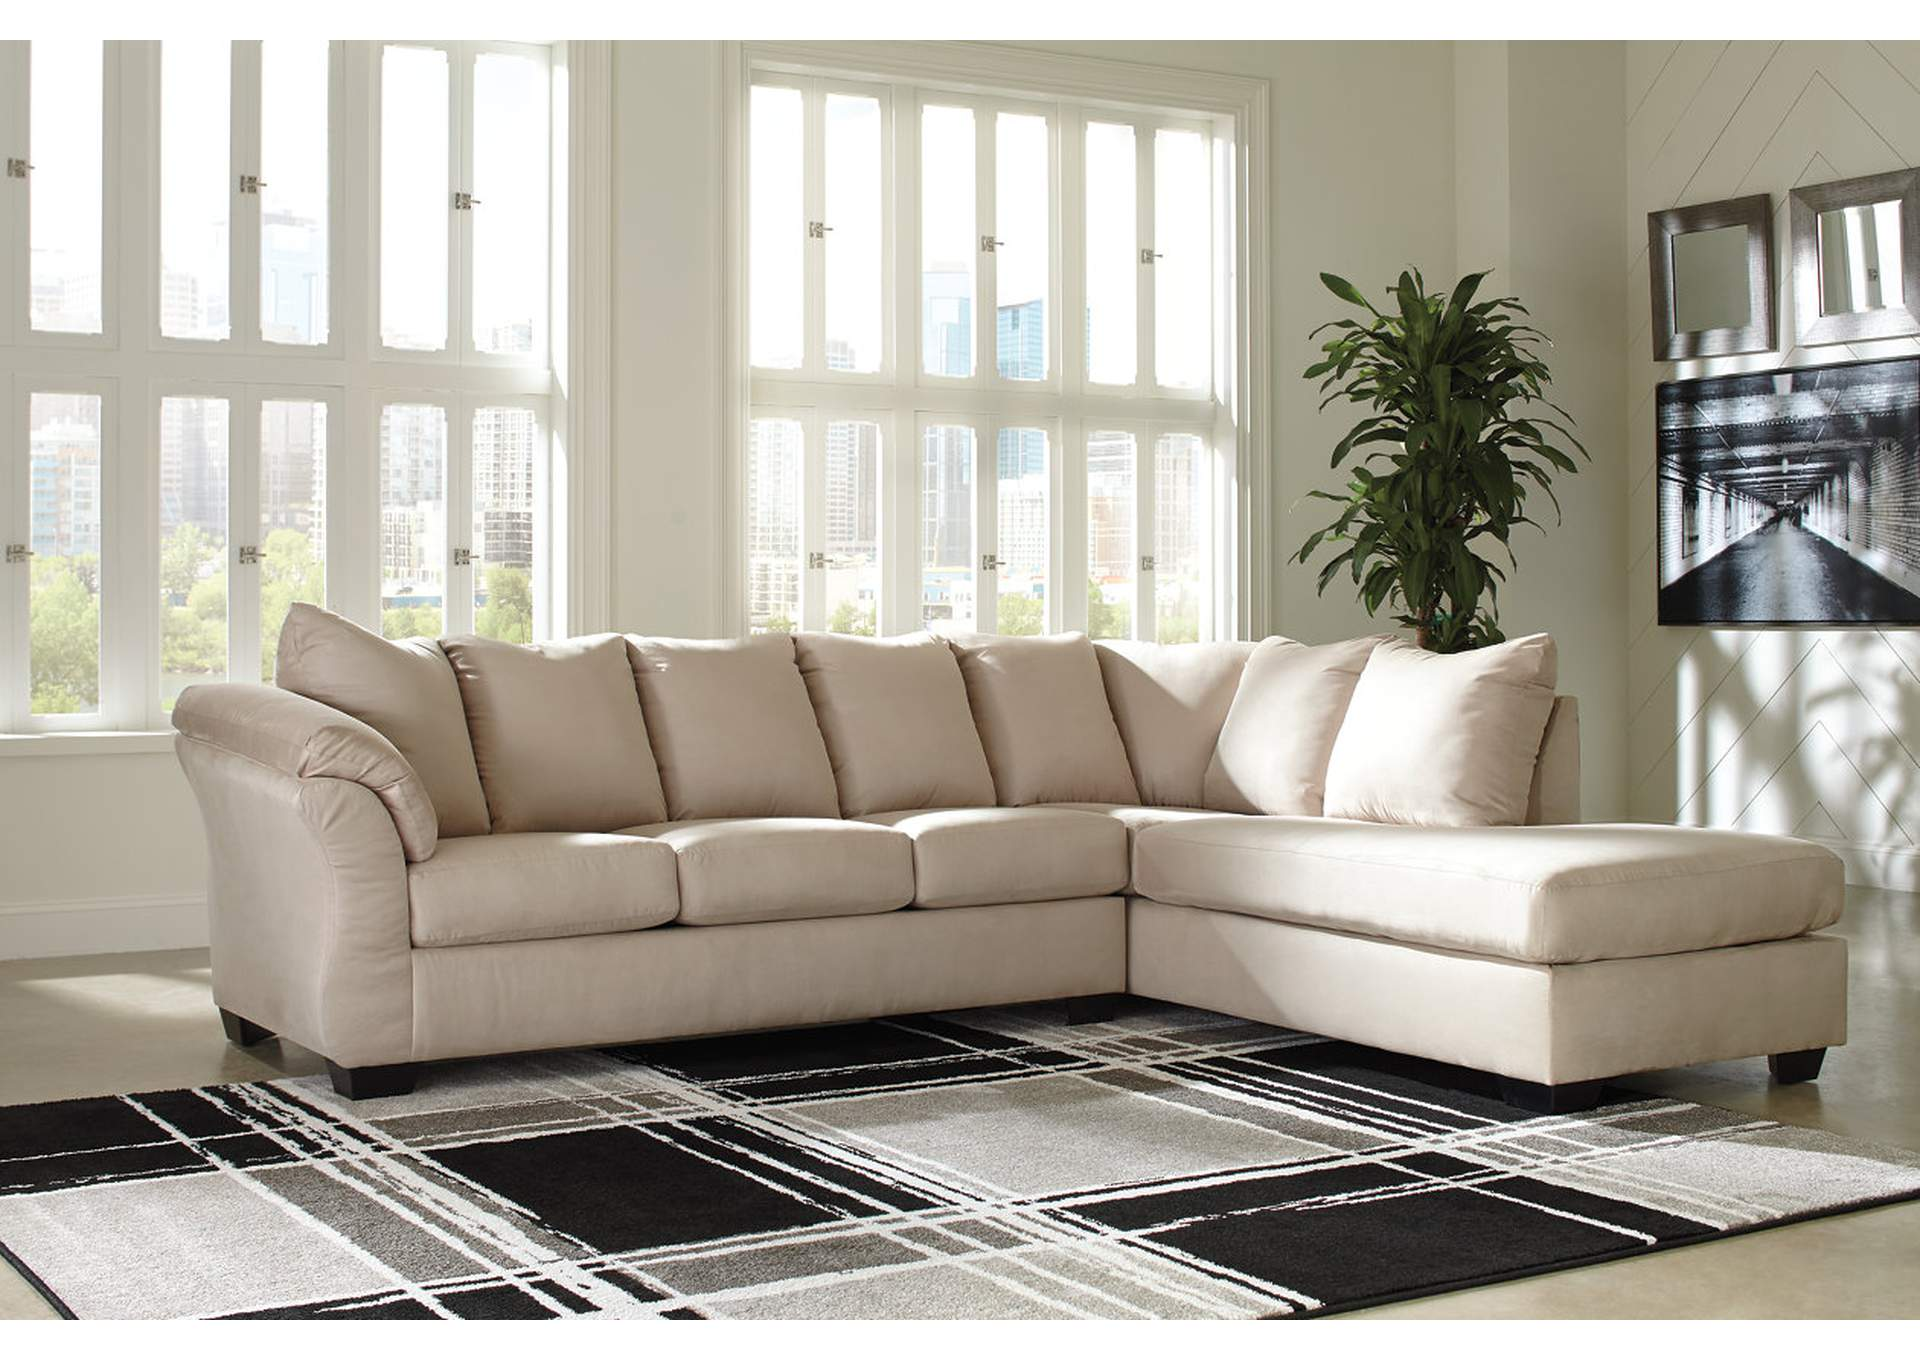 Darcy Stone RAF Chaise Sectional,Signature Design By Ashley